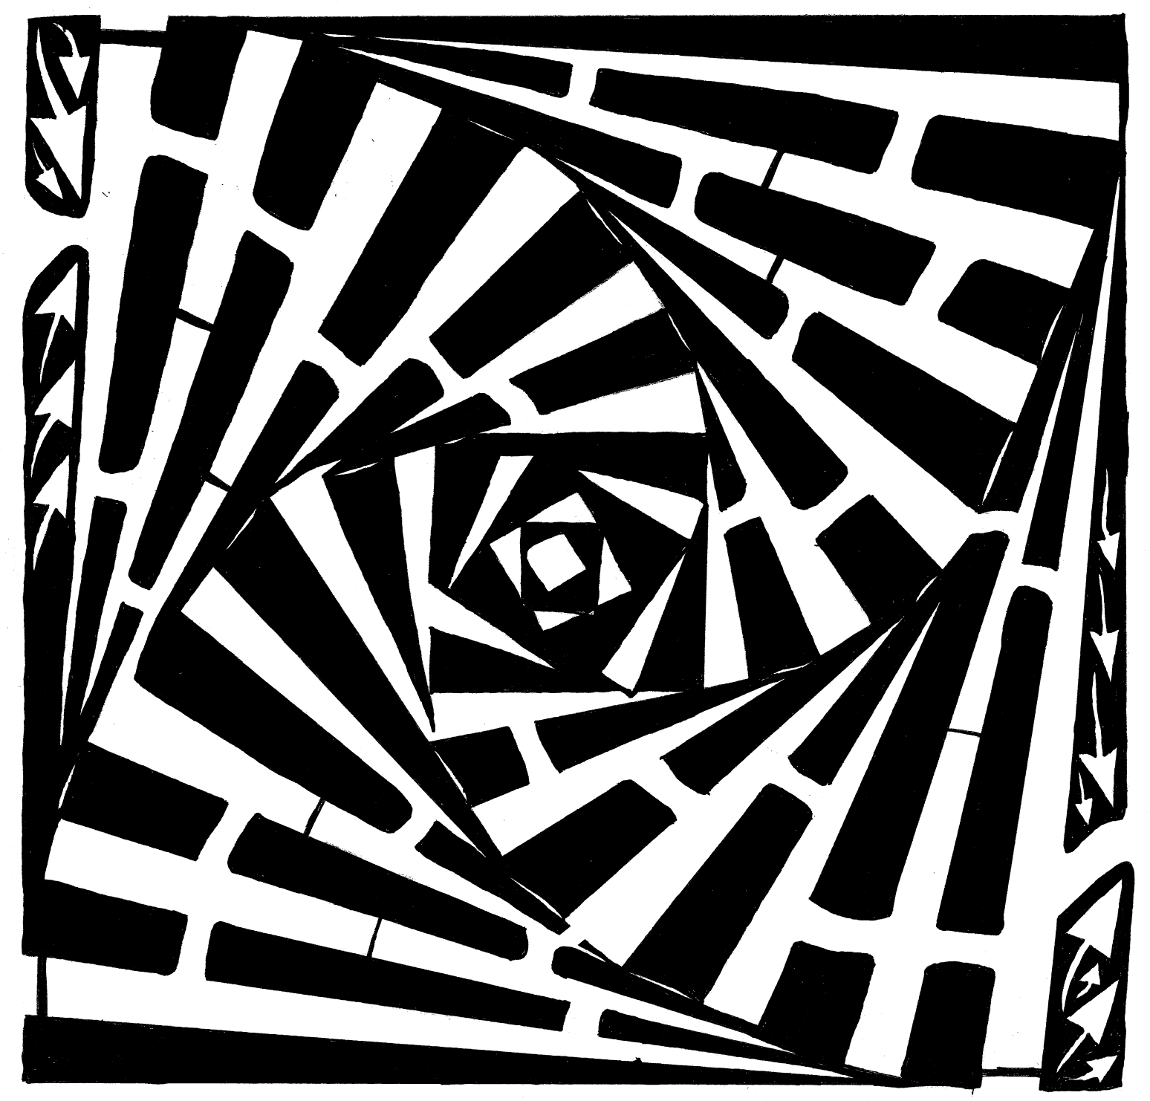 Stacked and Swirled Boxes Maze by Yonatan Frimer